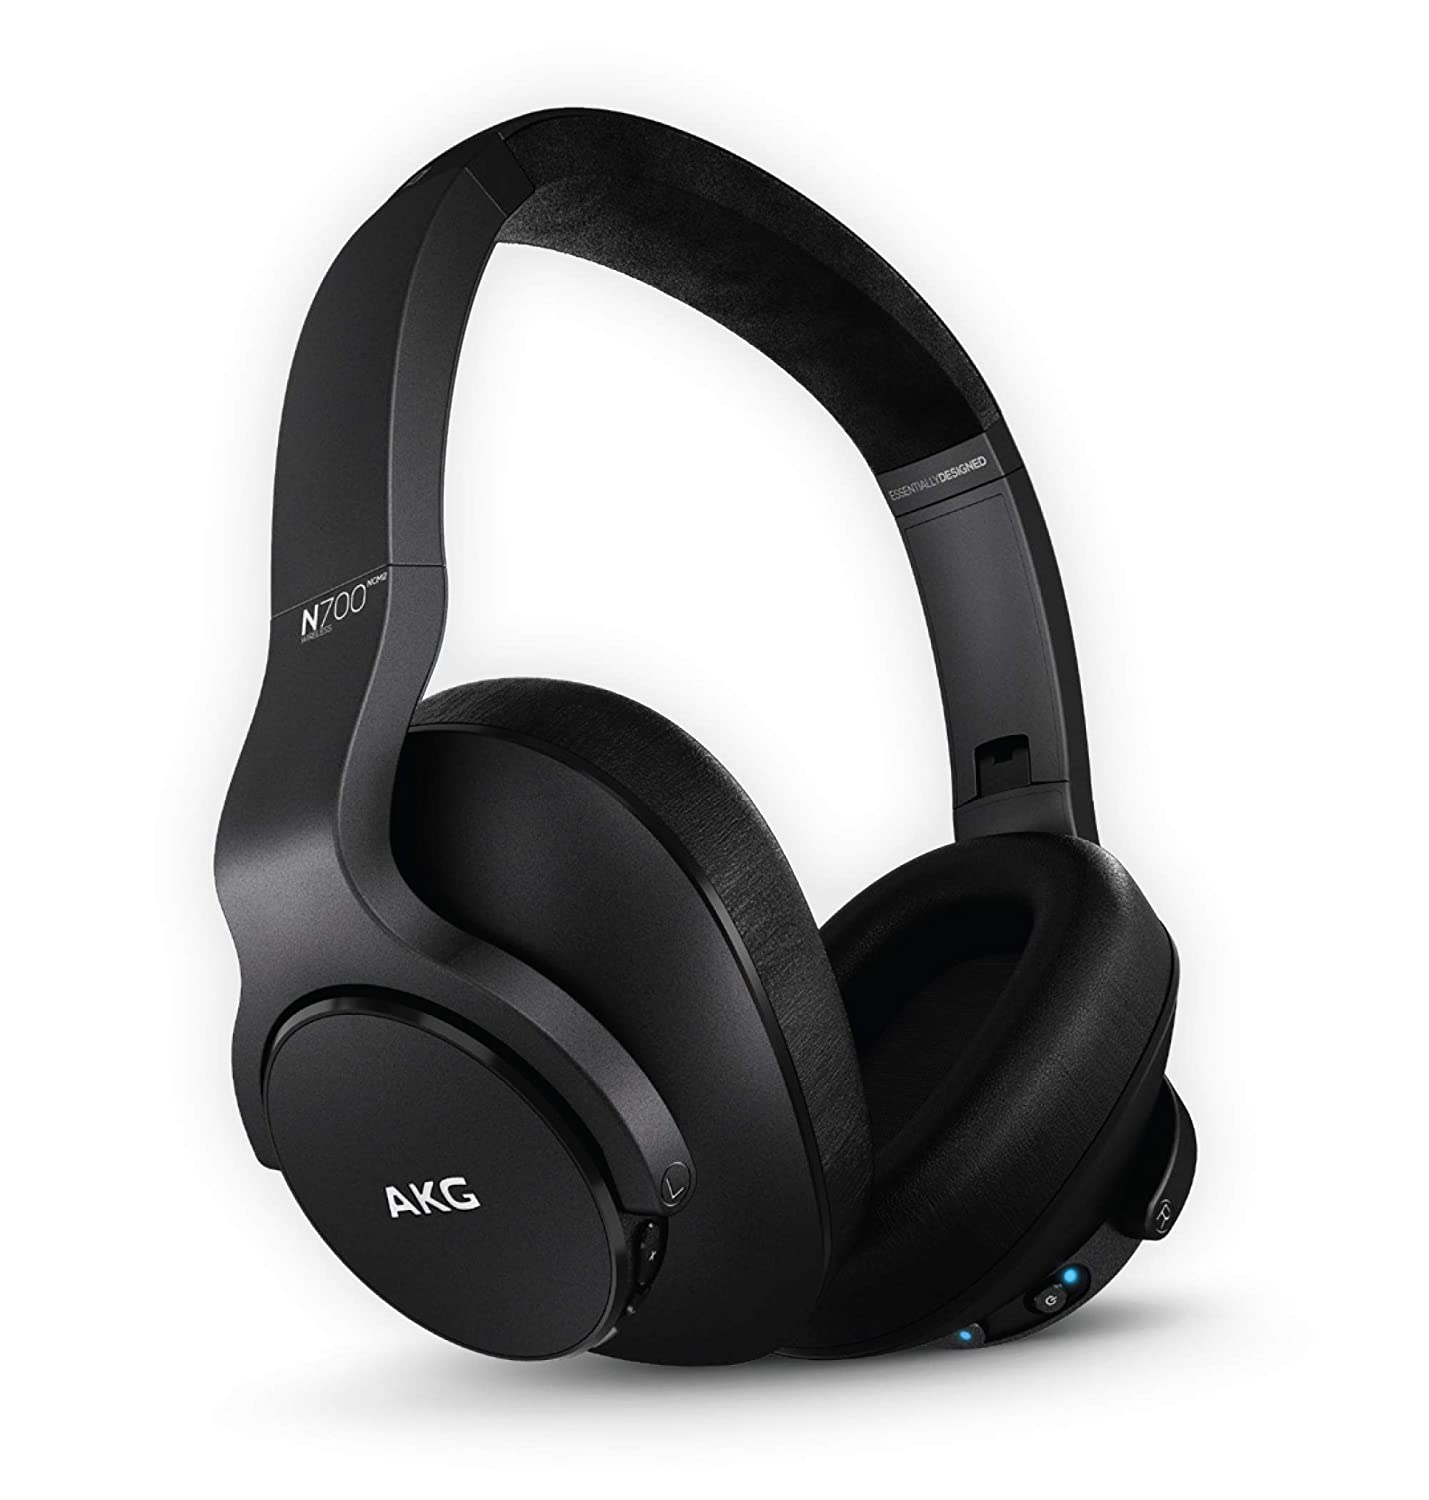 AKG (A Samsung Brand) N700NC M2 Over-Ear Foldable Wireless Headphones, Active Noise Cancelling Headphones - Black (US Version)